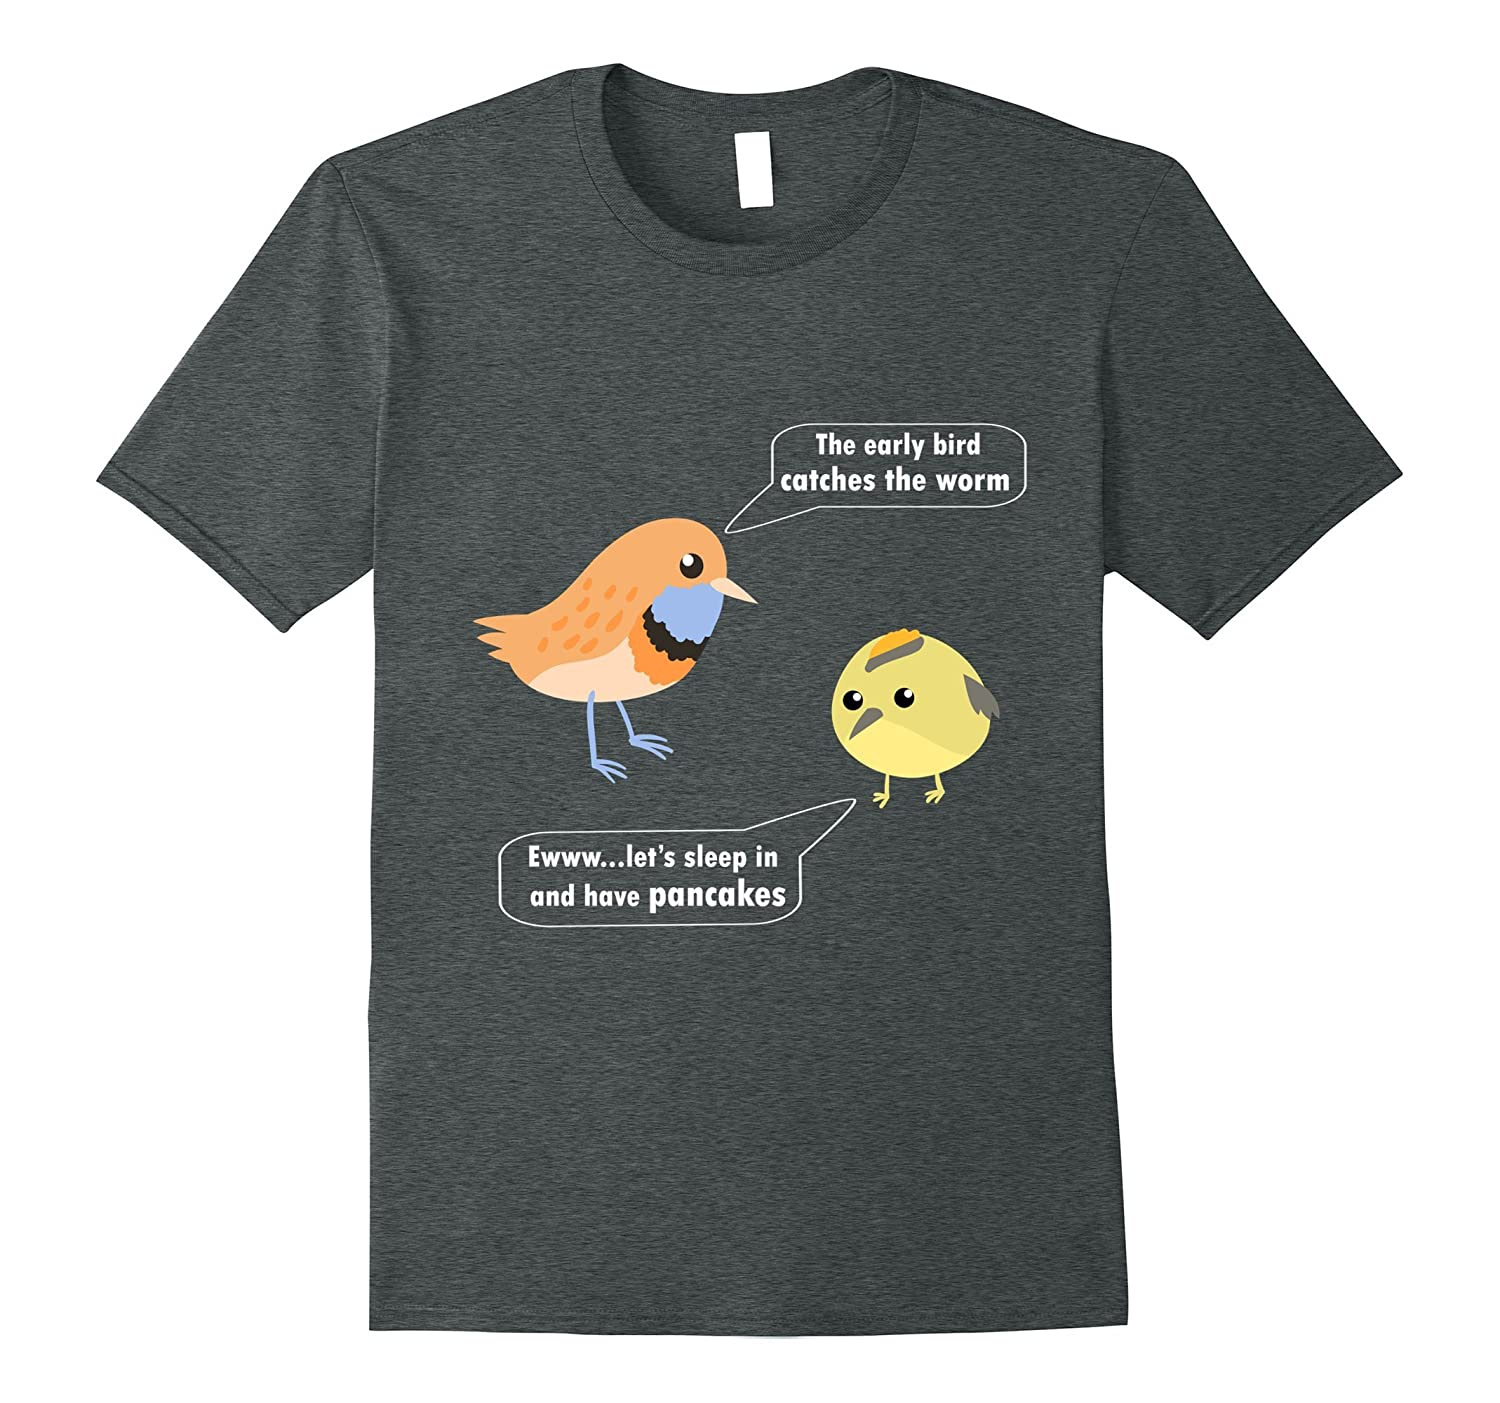 3420ac85f1 Early bird catches the worm cute funny bird idiom shirts-ANZ ...